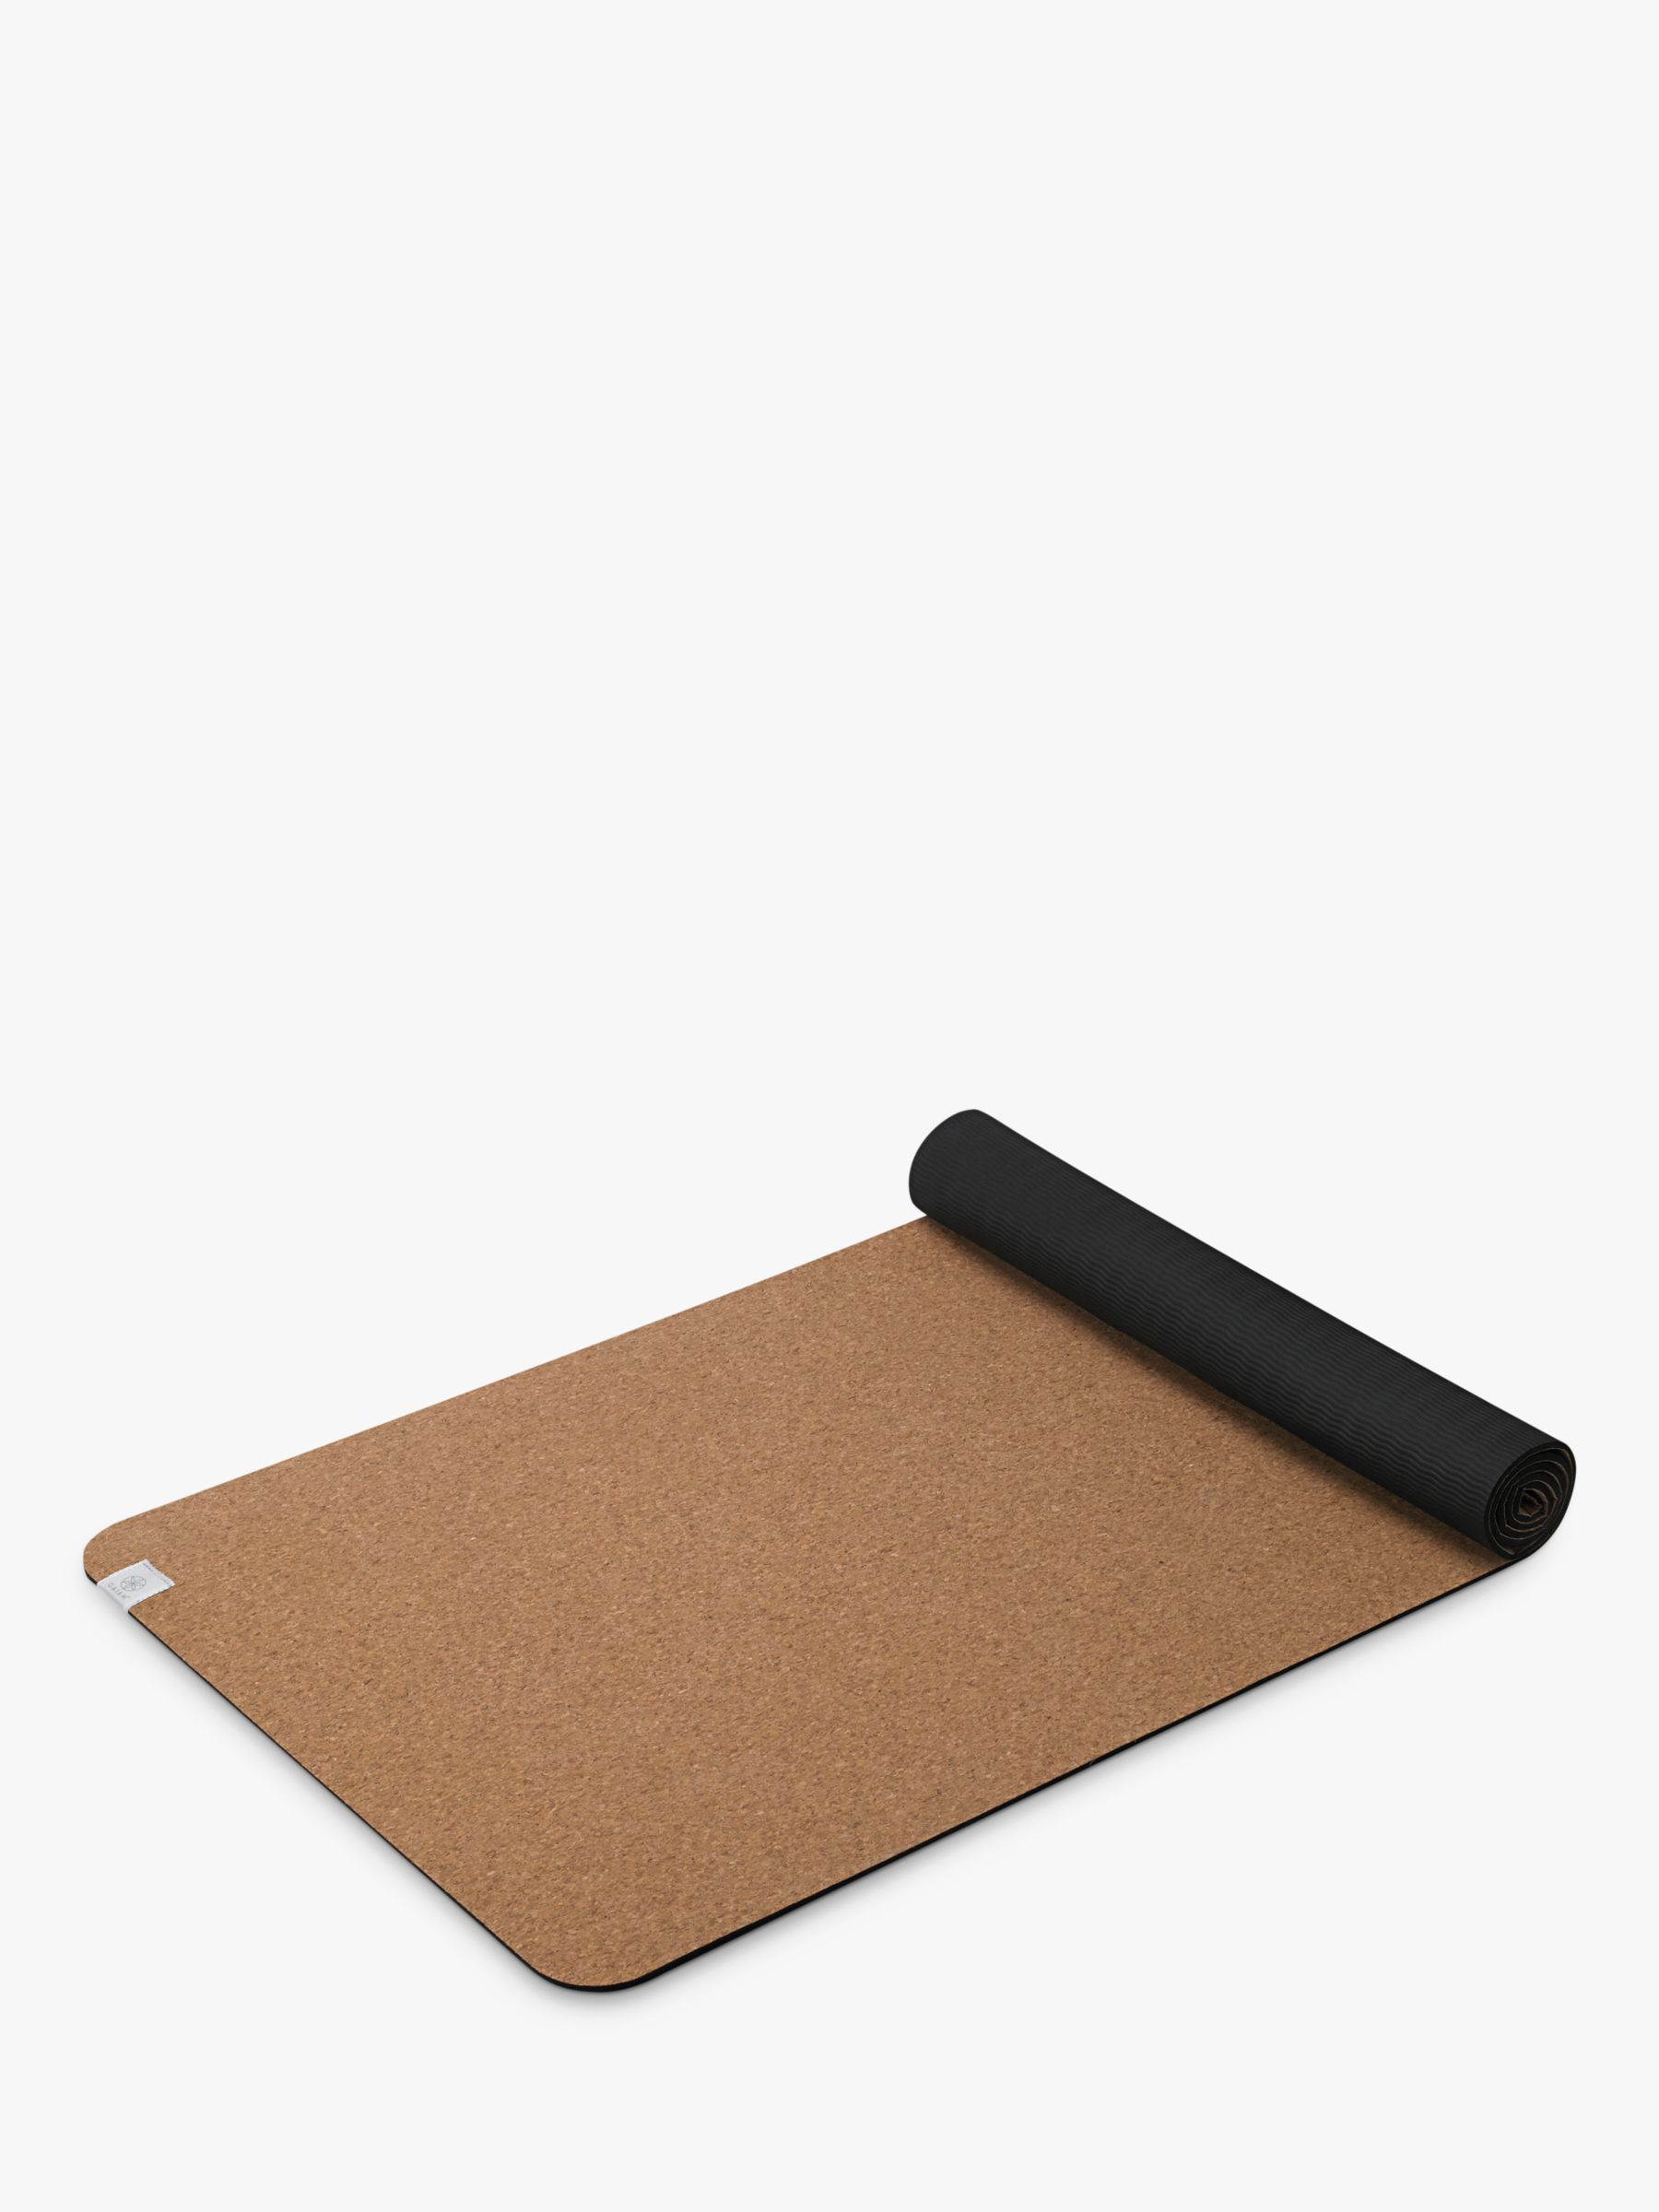 Gaiam Gaiam Performance Cork 5mm Yoga Mat